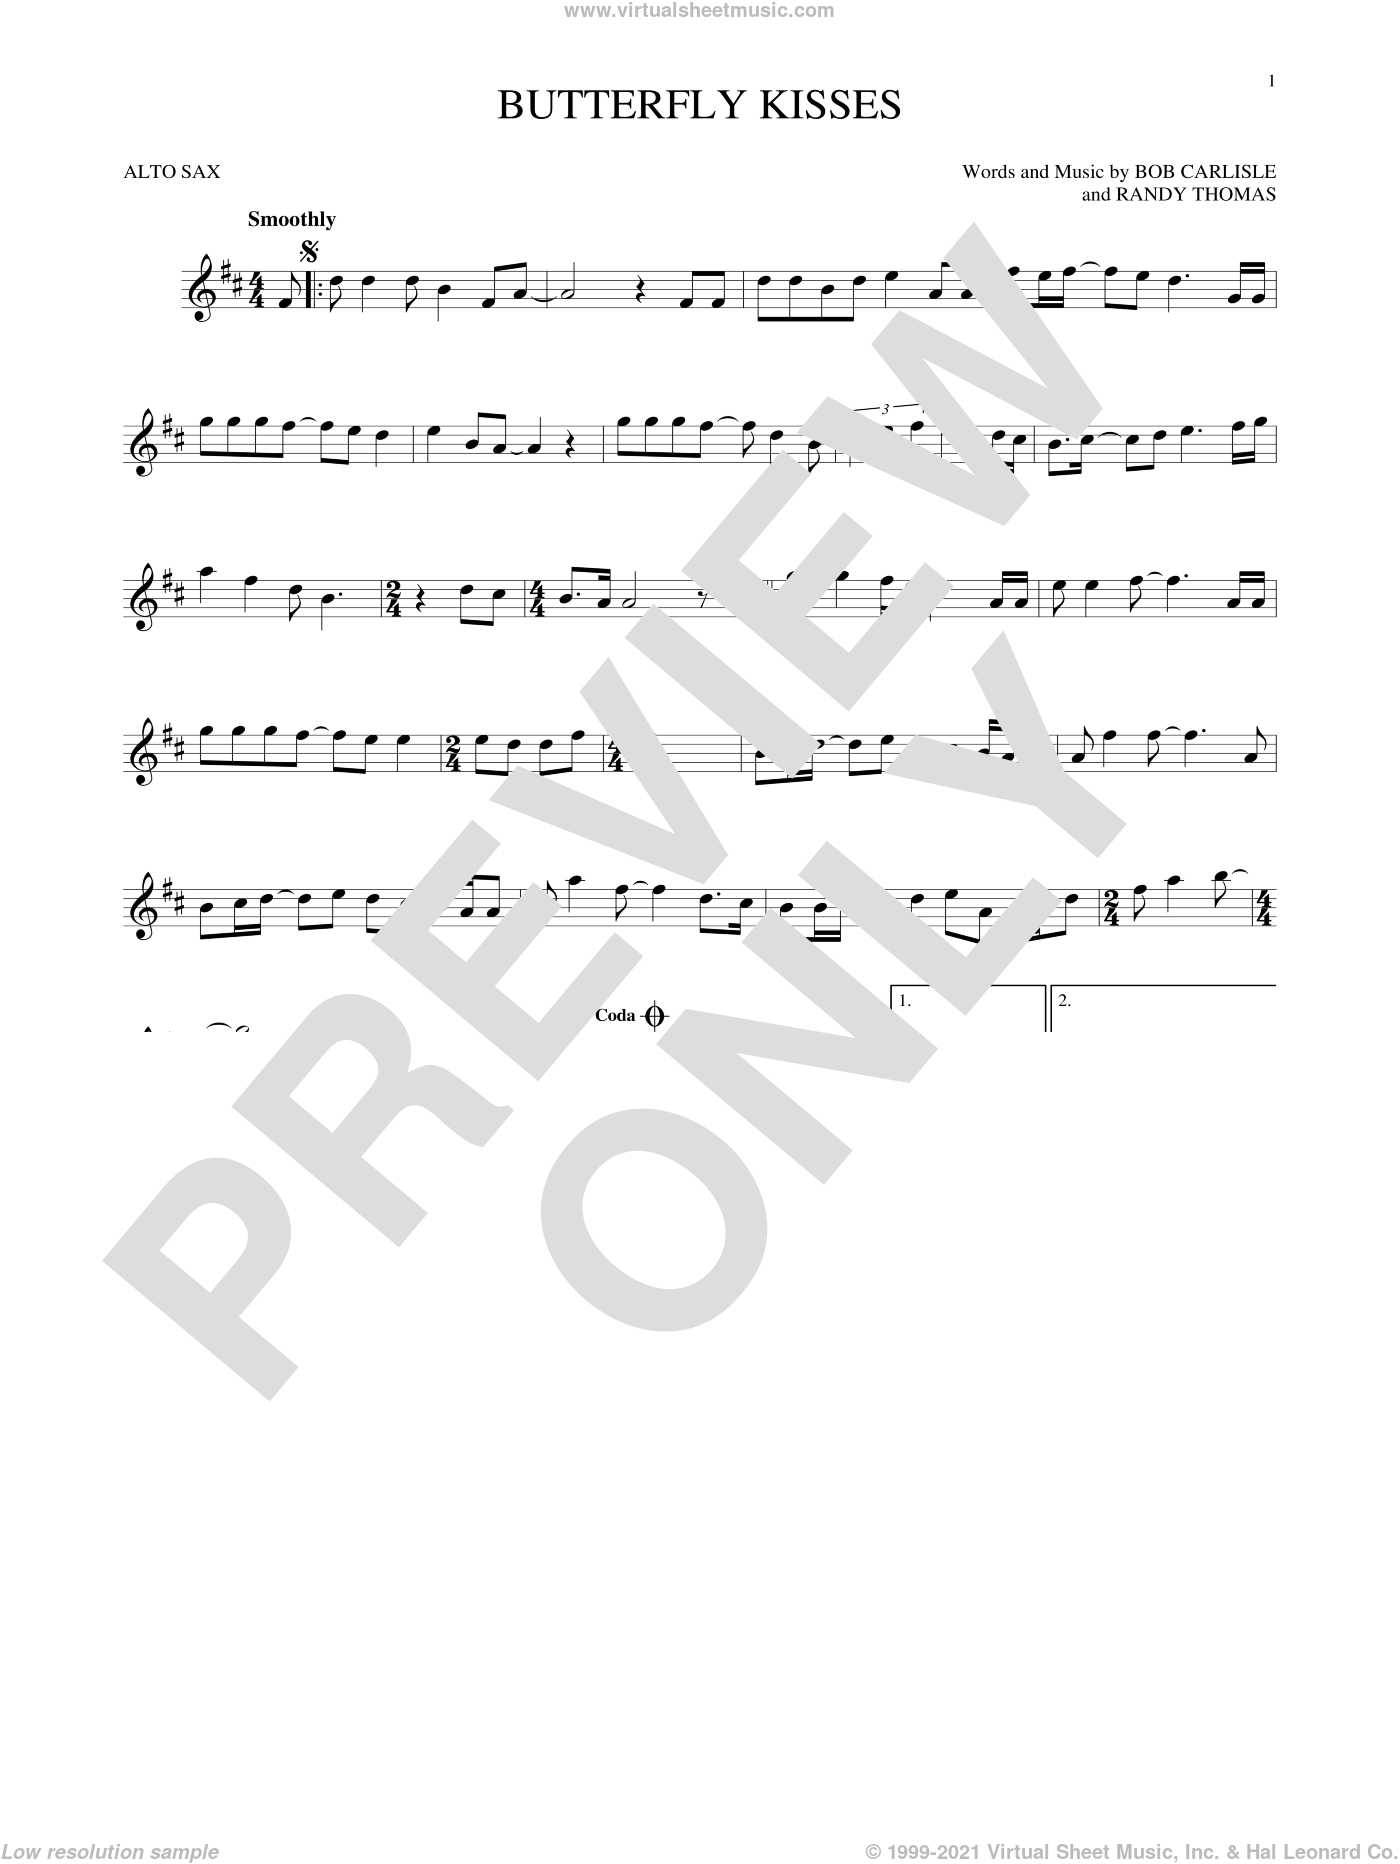 Butterfly Kisses sheet music for alto saxophone solo by Randy Thomas